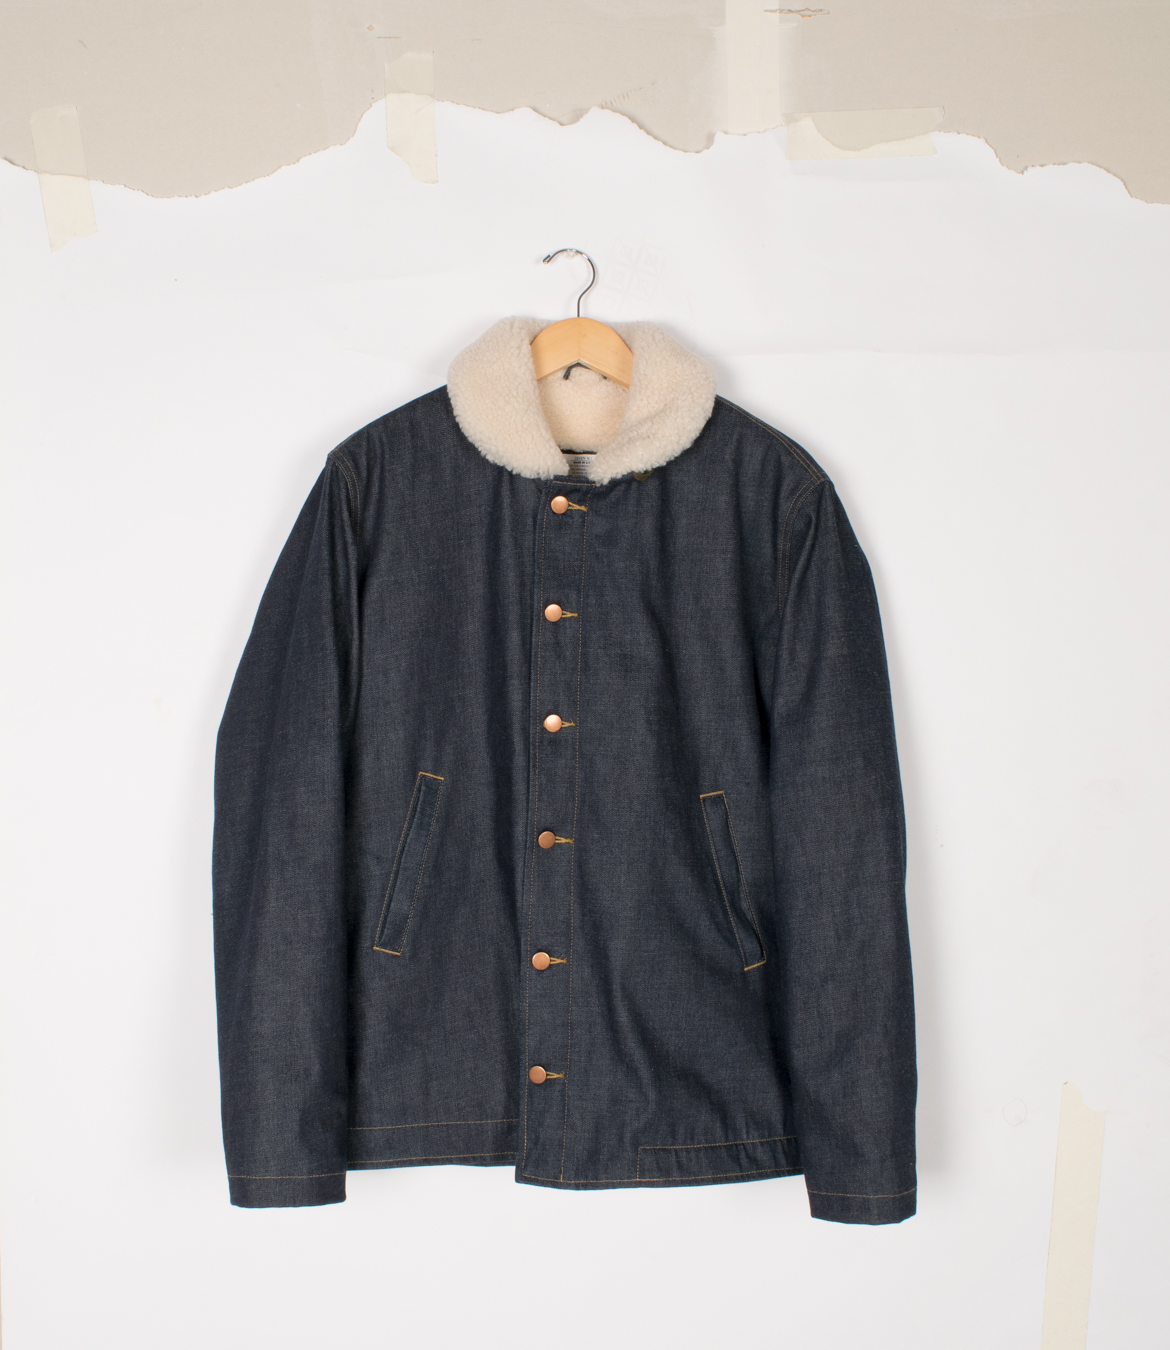 N-1 Deck Jacket - Selvedge Denim/Natural